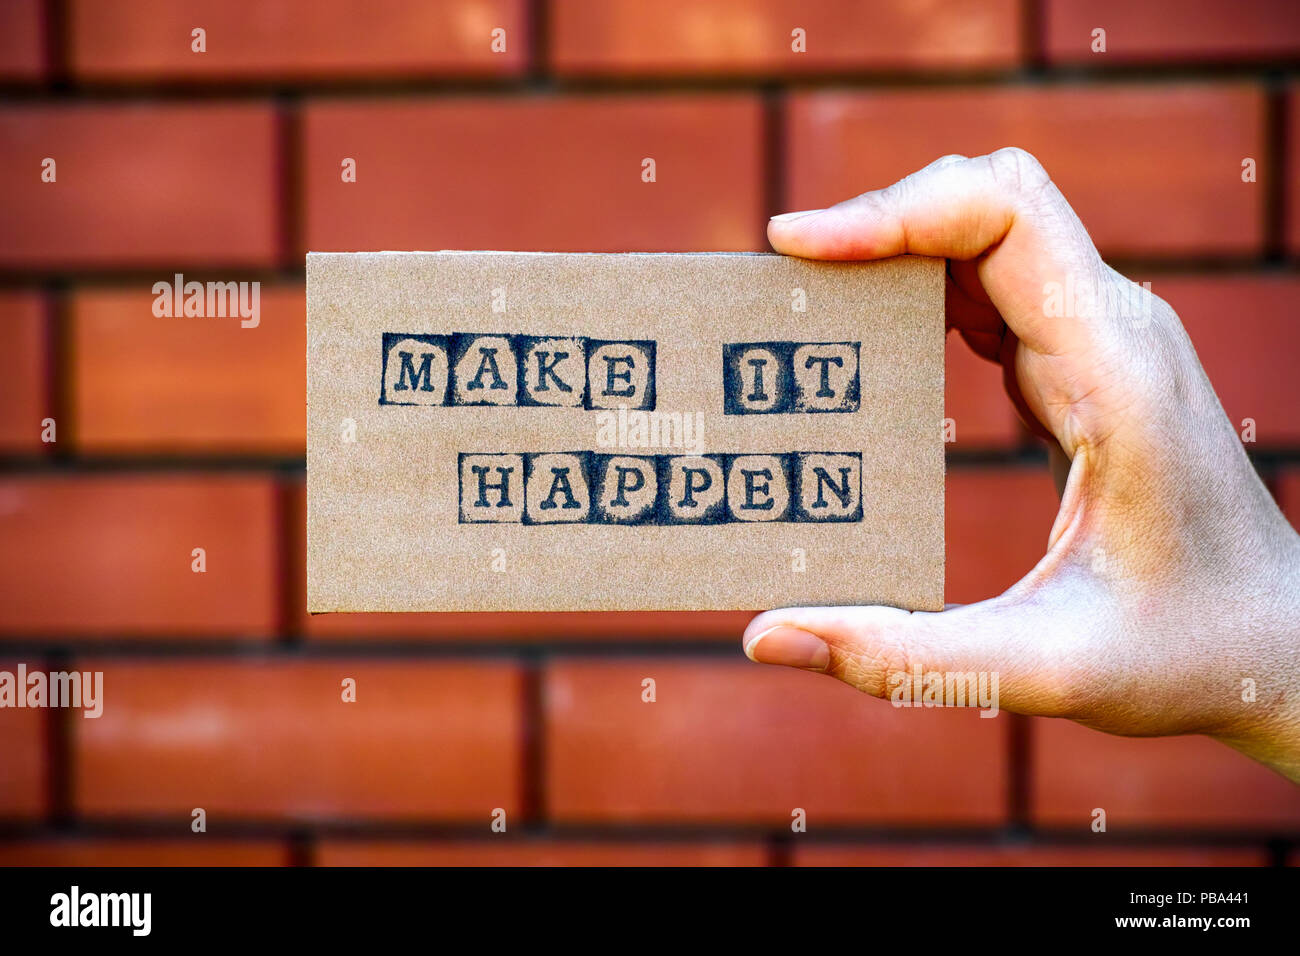 Woman hand holding cardboard card with words Make It Happen made by black alphabet stamps against brick wall background. Stock Photo